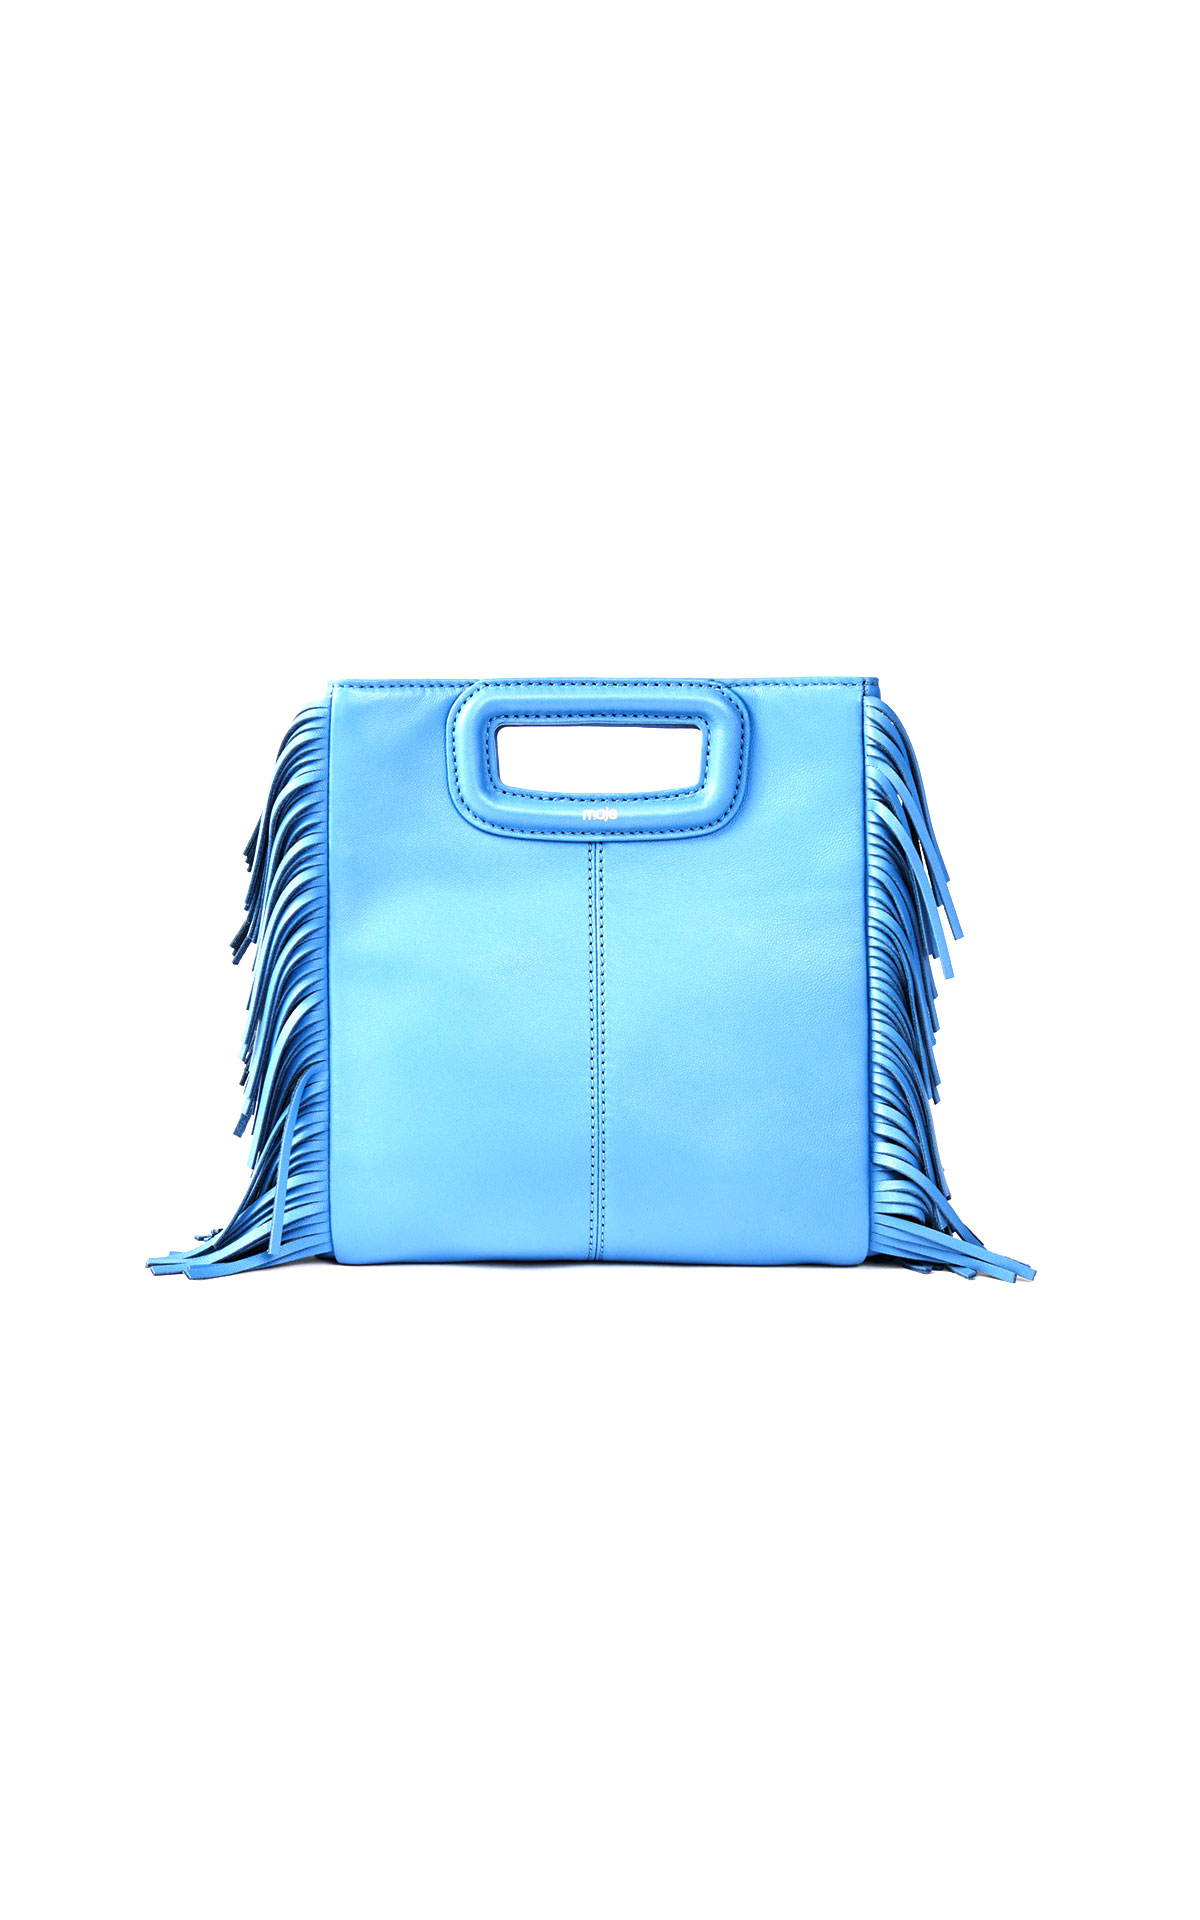 Maje blue leather medium bag at The Bicester Village Shopping Collection